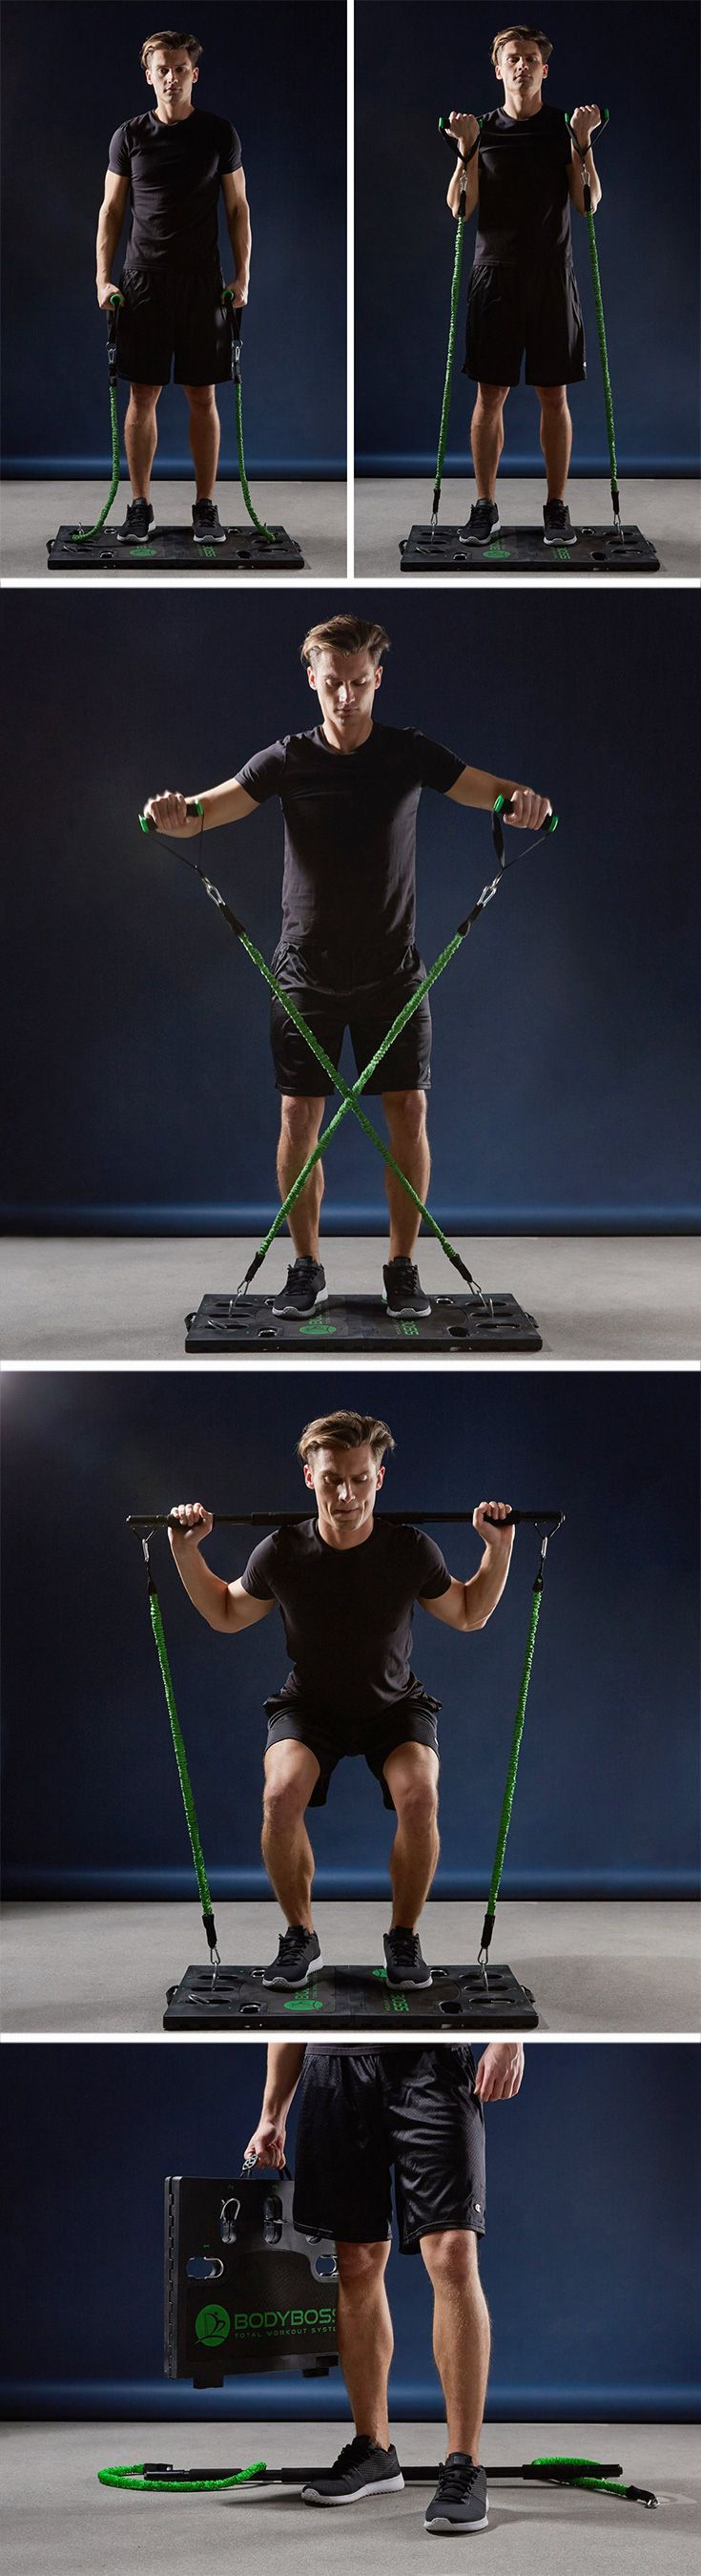 The Bodyboss 2.0 uses the pulling of elastic cords to super-compress your entire gymming experience.